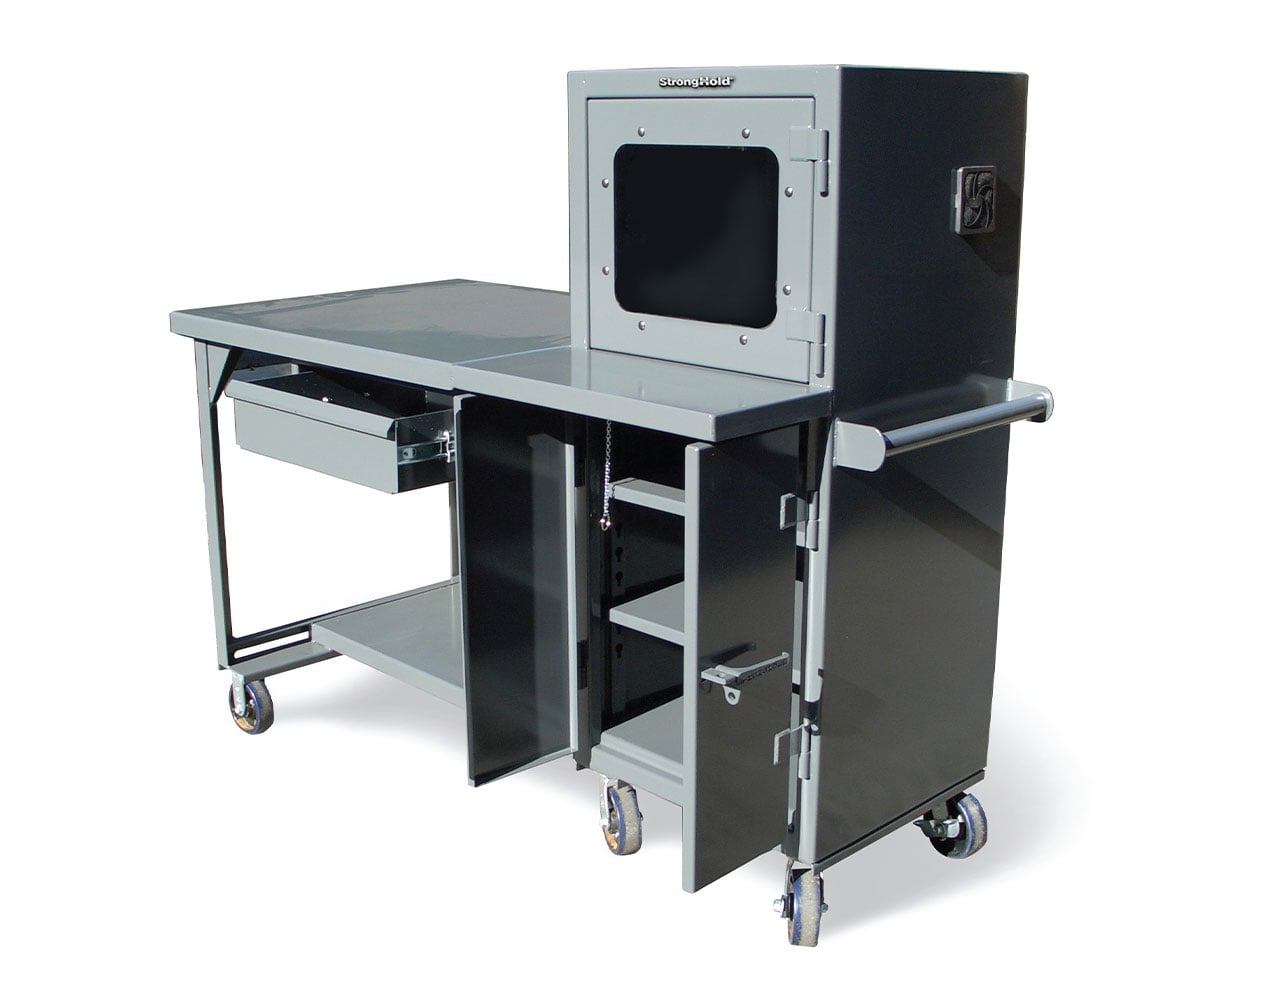 Extreme Duty 7 GA Mobile Industrial Shop Table with Computer Cabinet – 68 In. W x 36 In. D x 69 In. H